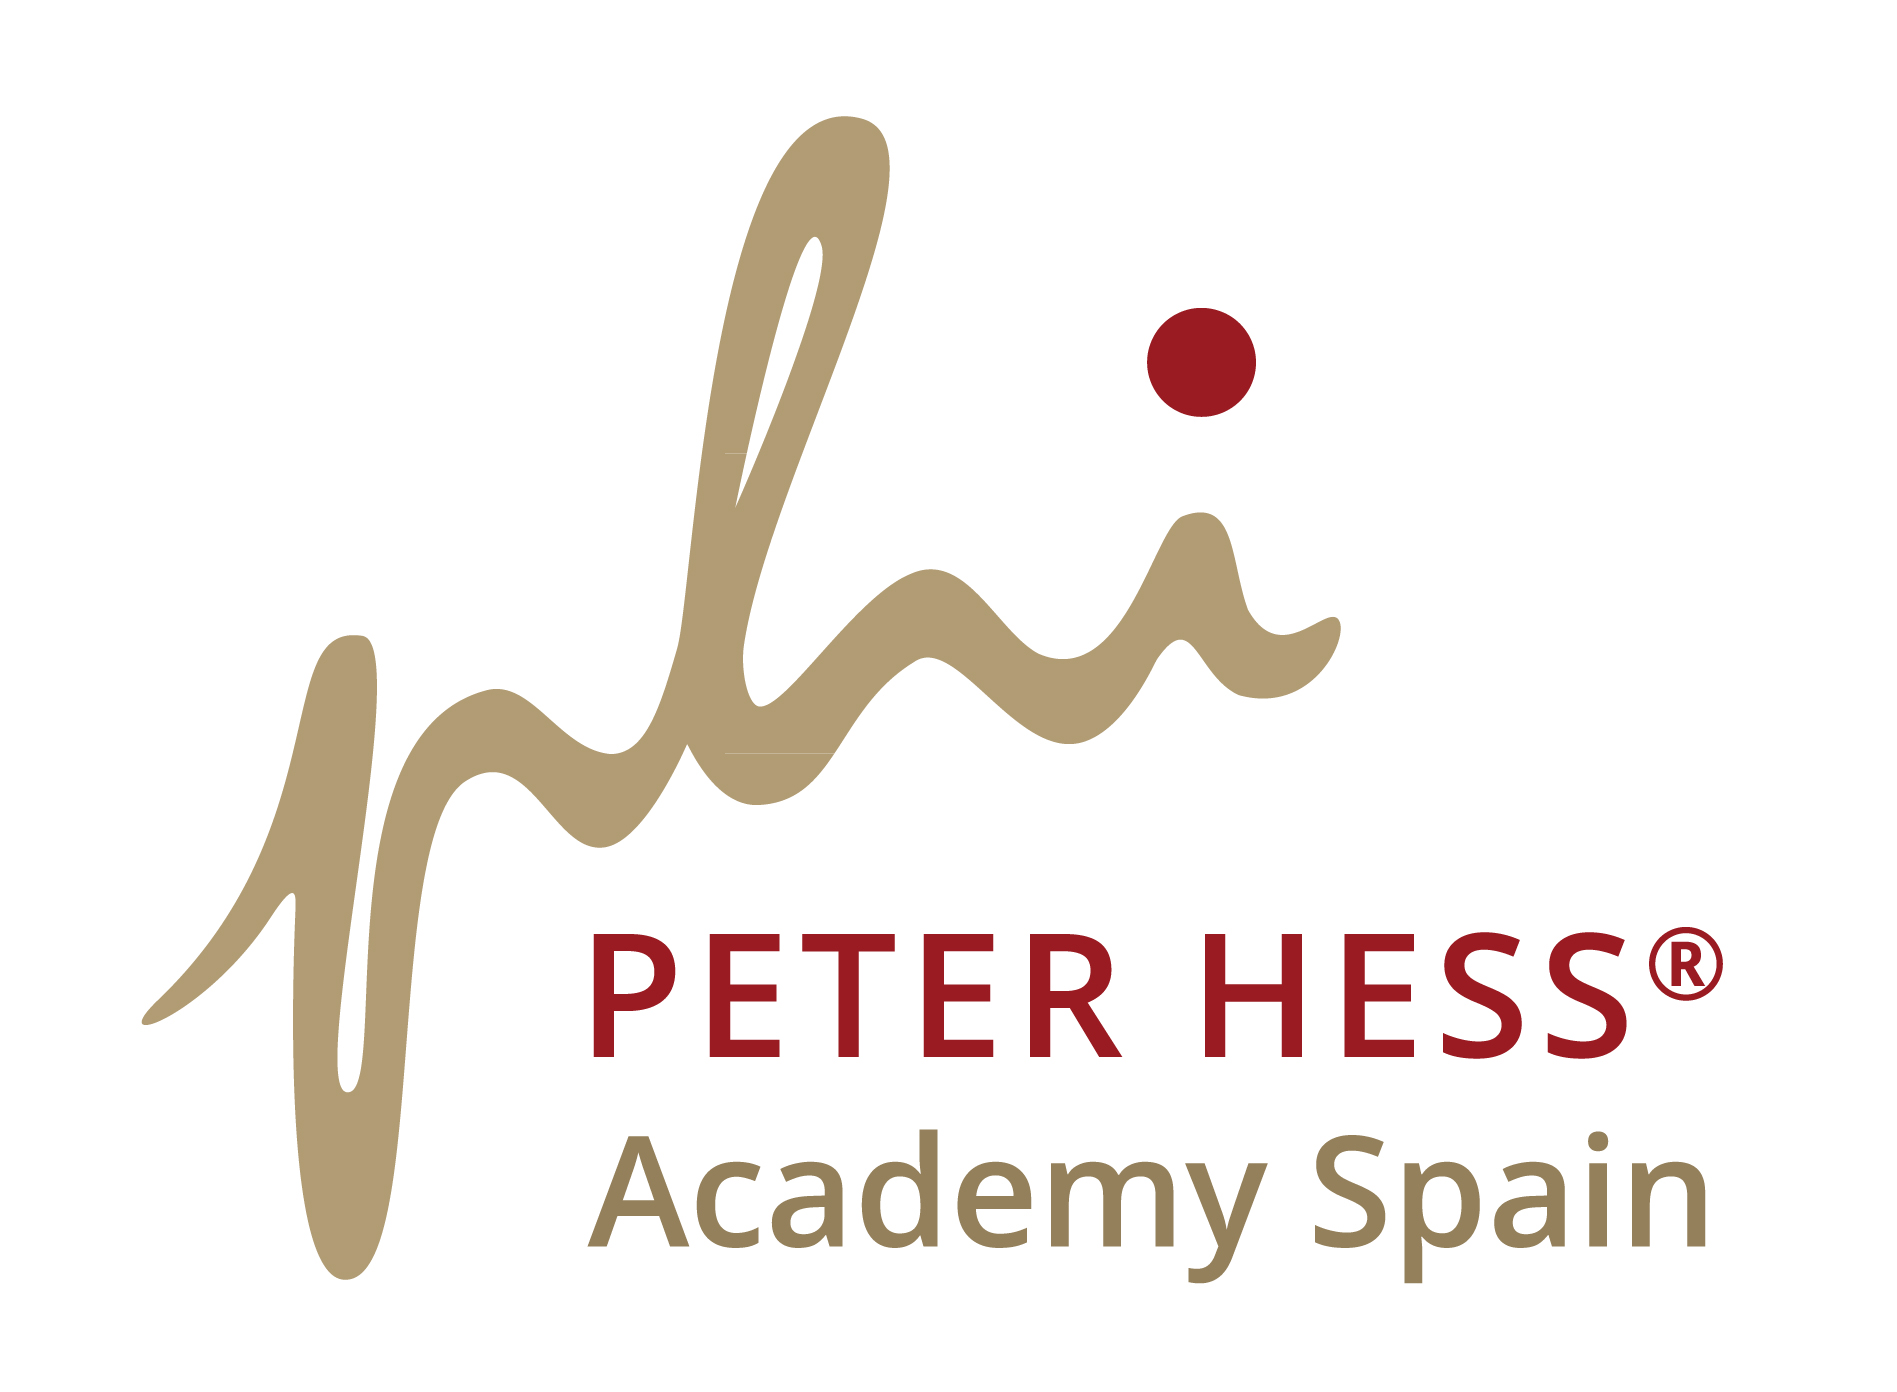 peterhess